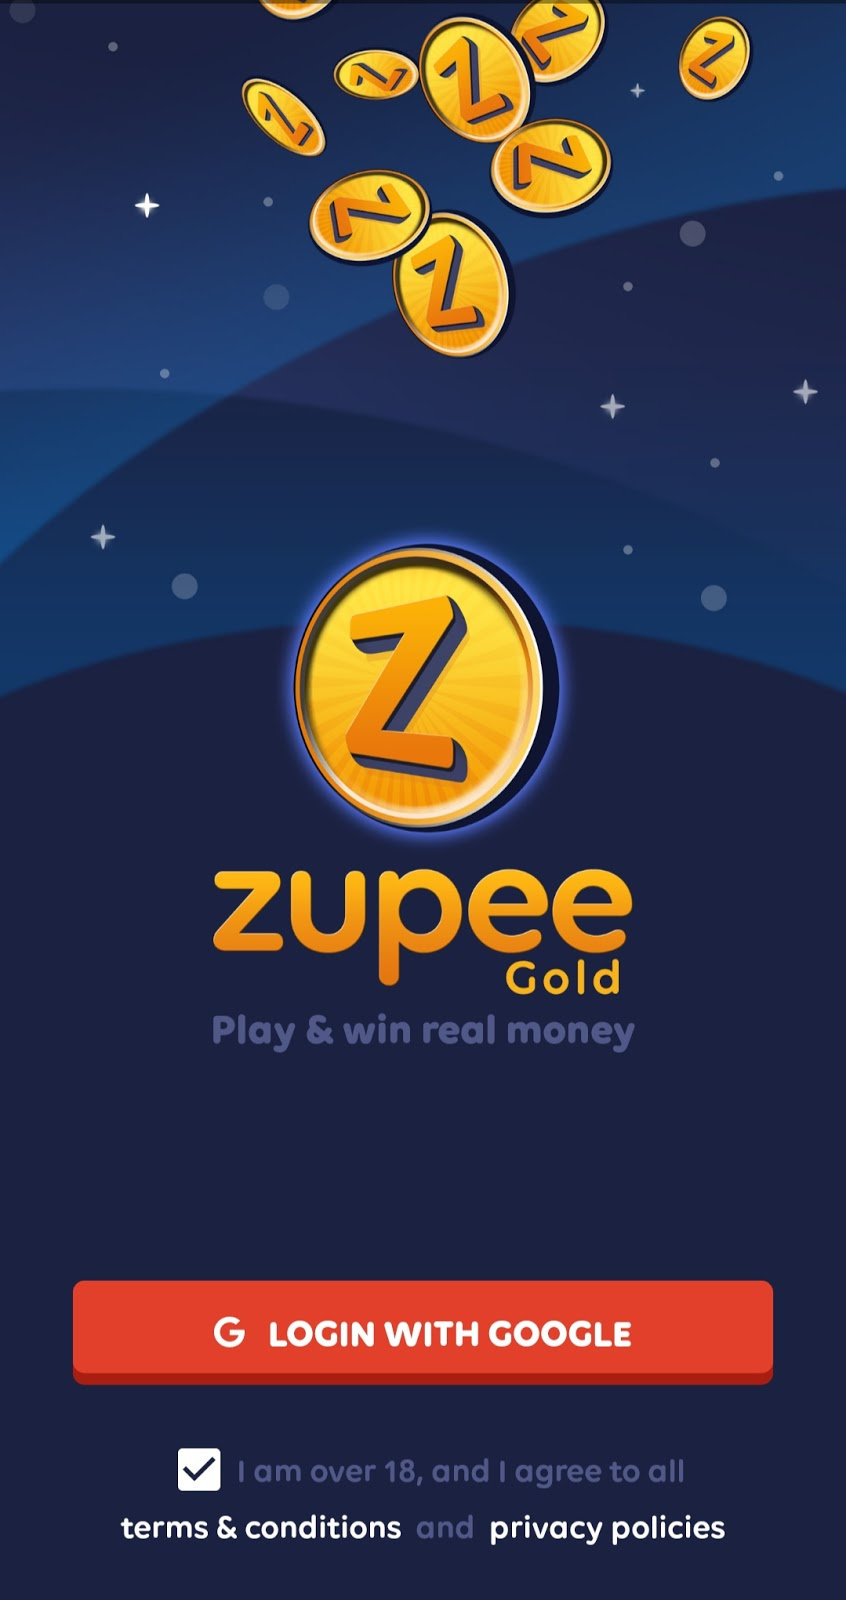 Zuppe Gold - Ger Rs  10 On SignUp And Rs  10 On Per Refer